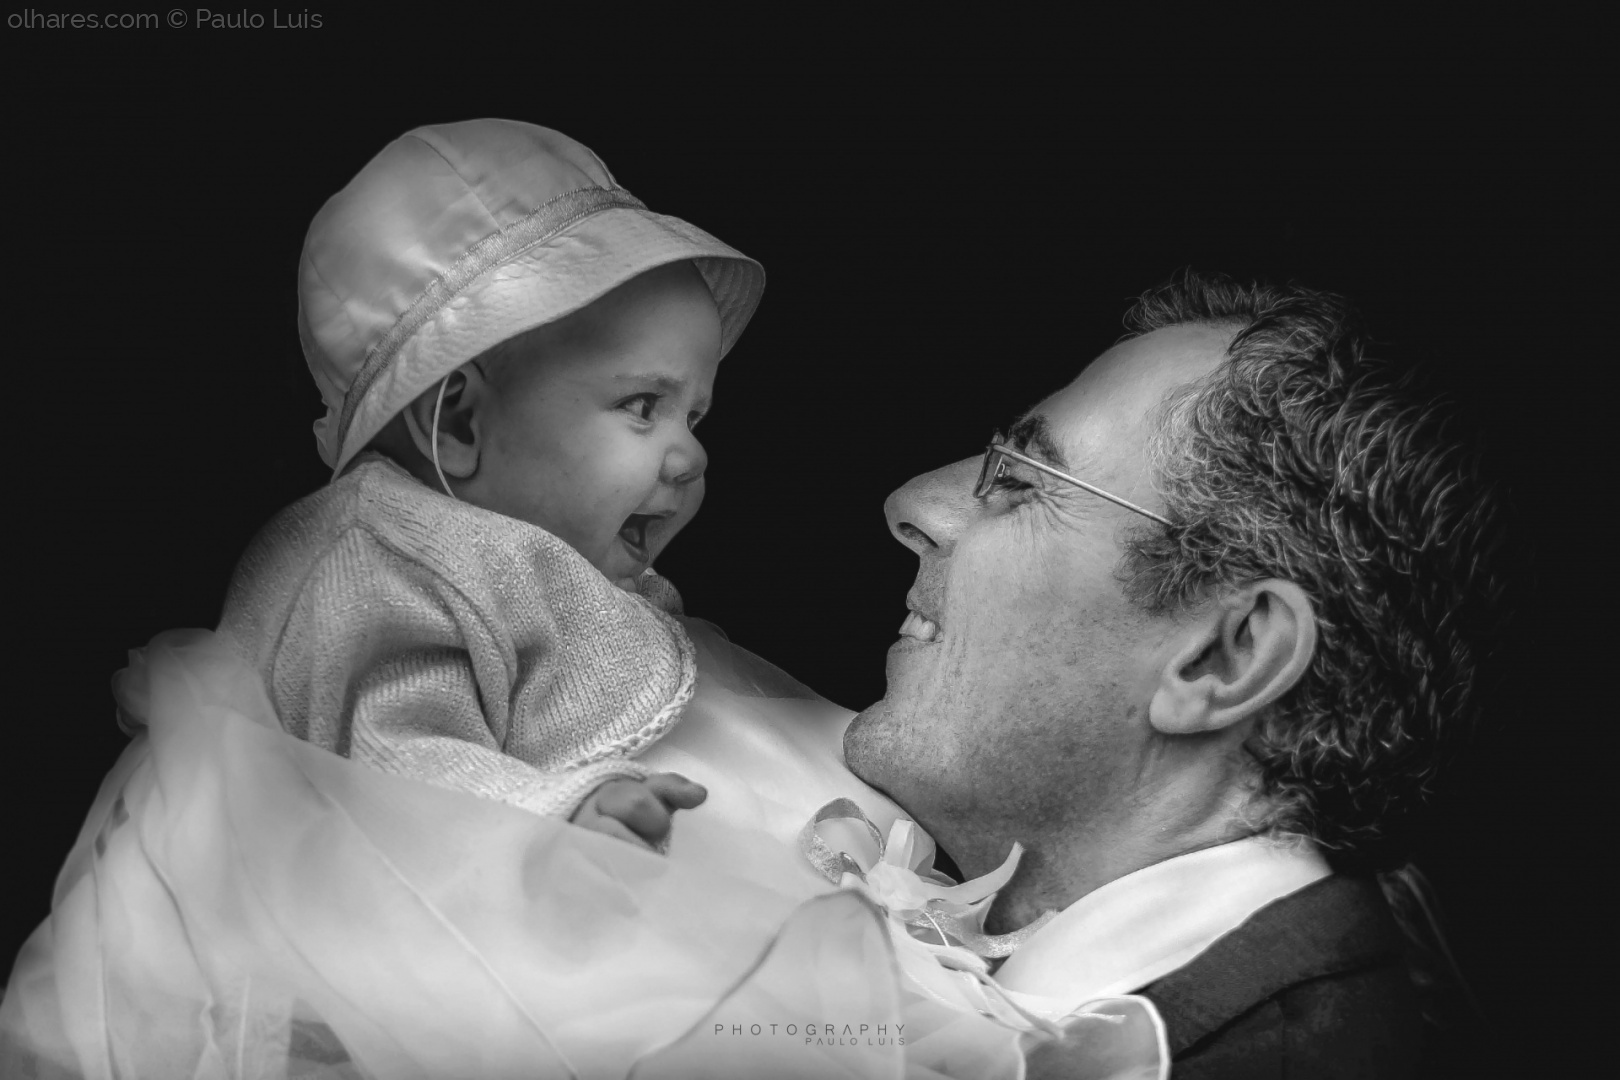 © Paulo Luis - Happy Father's Day